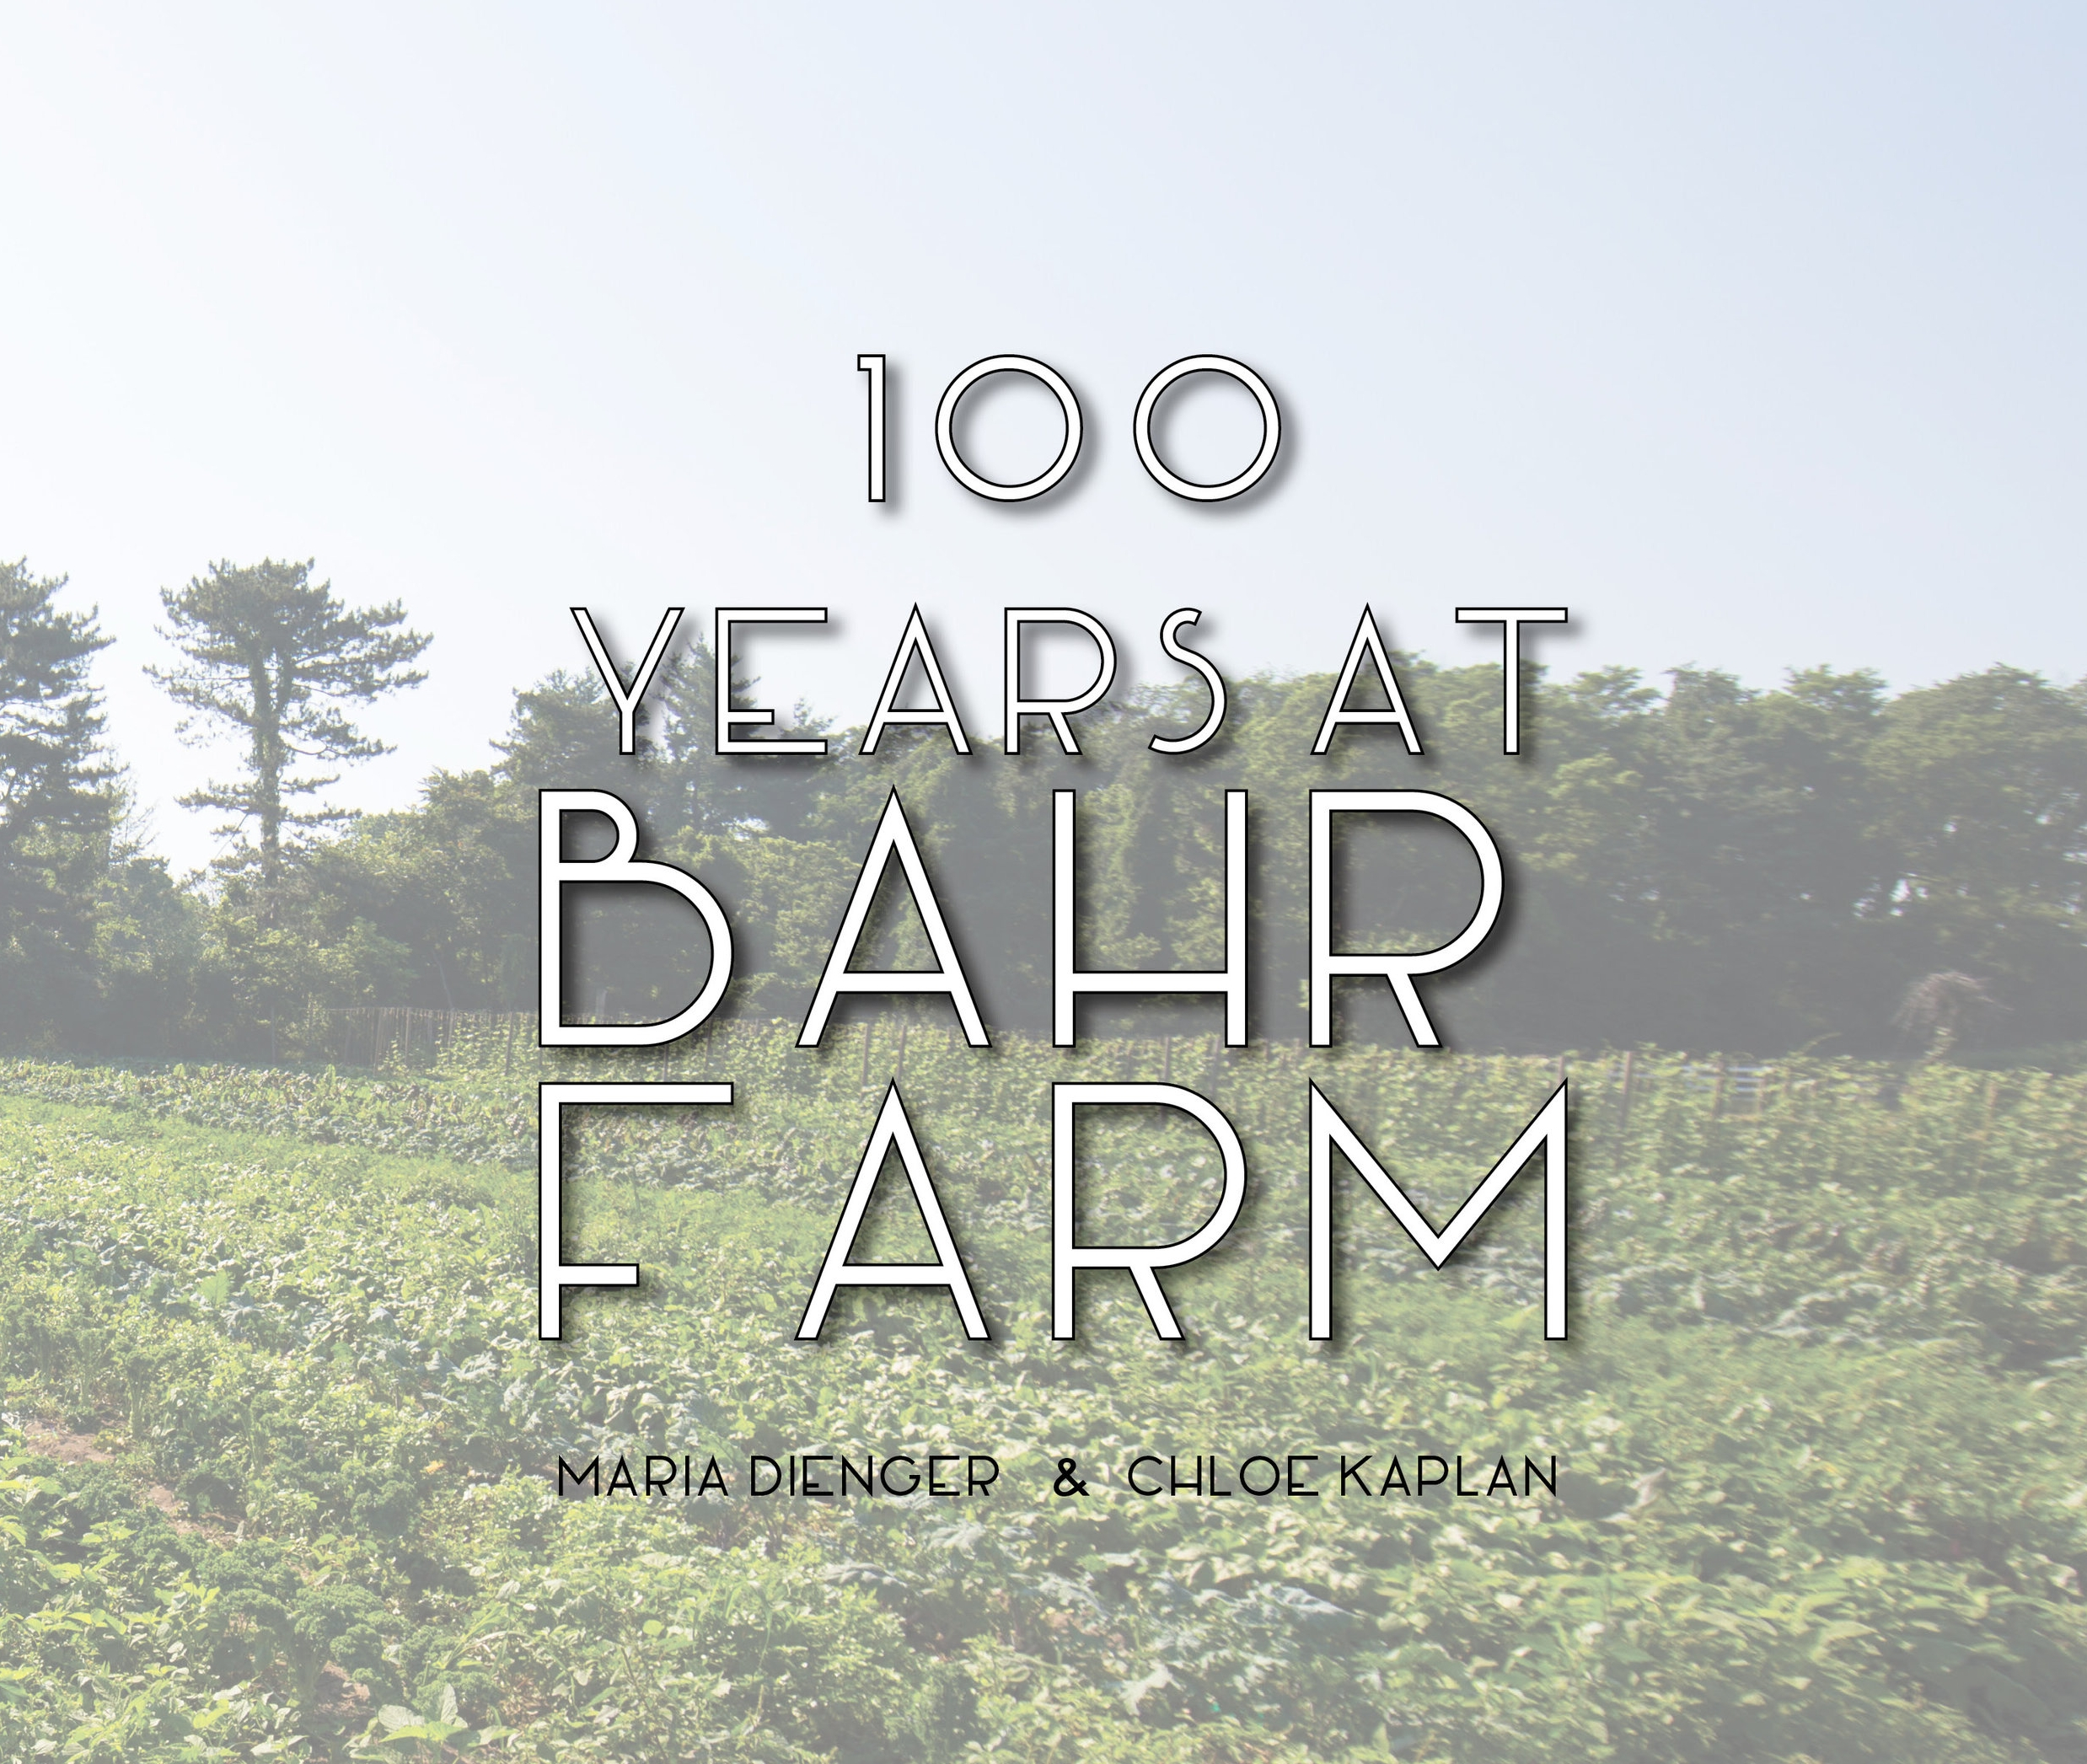 Copy of 100 Years at Bahr Farm book